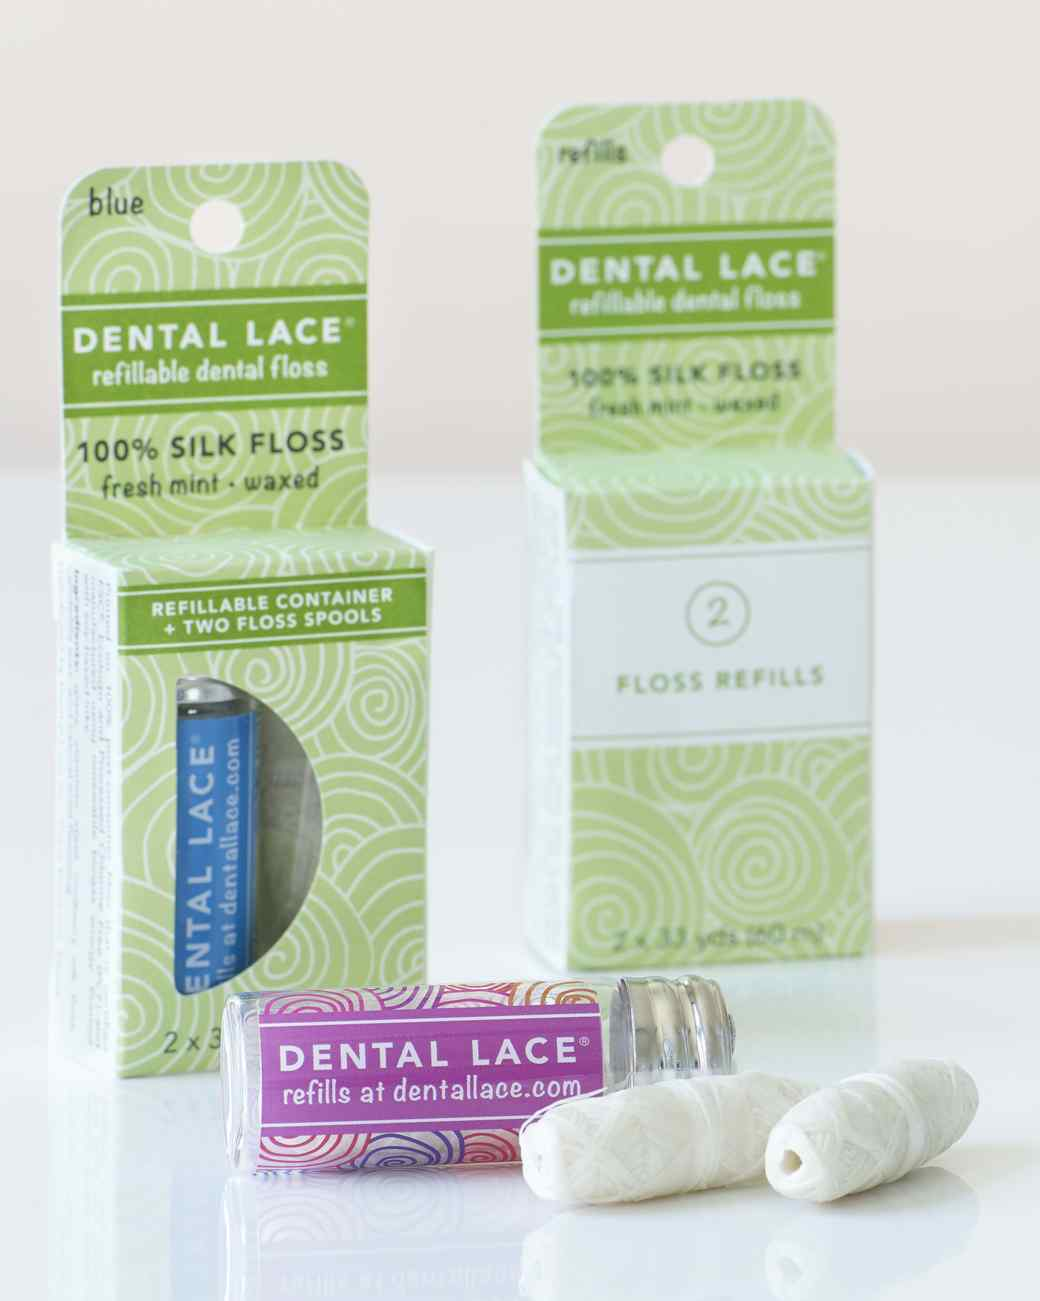 dental-lace-earth-day-0318